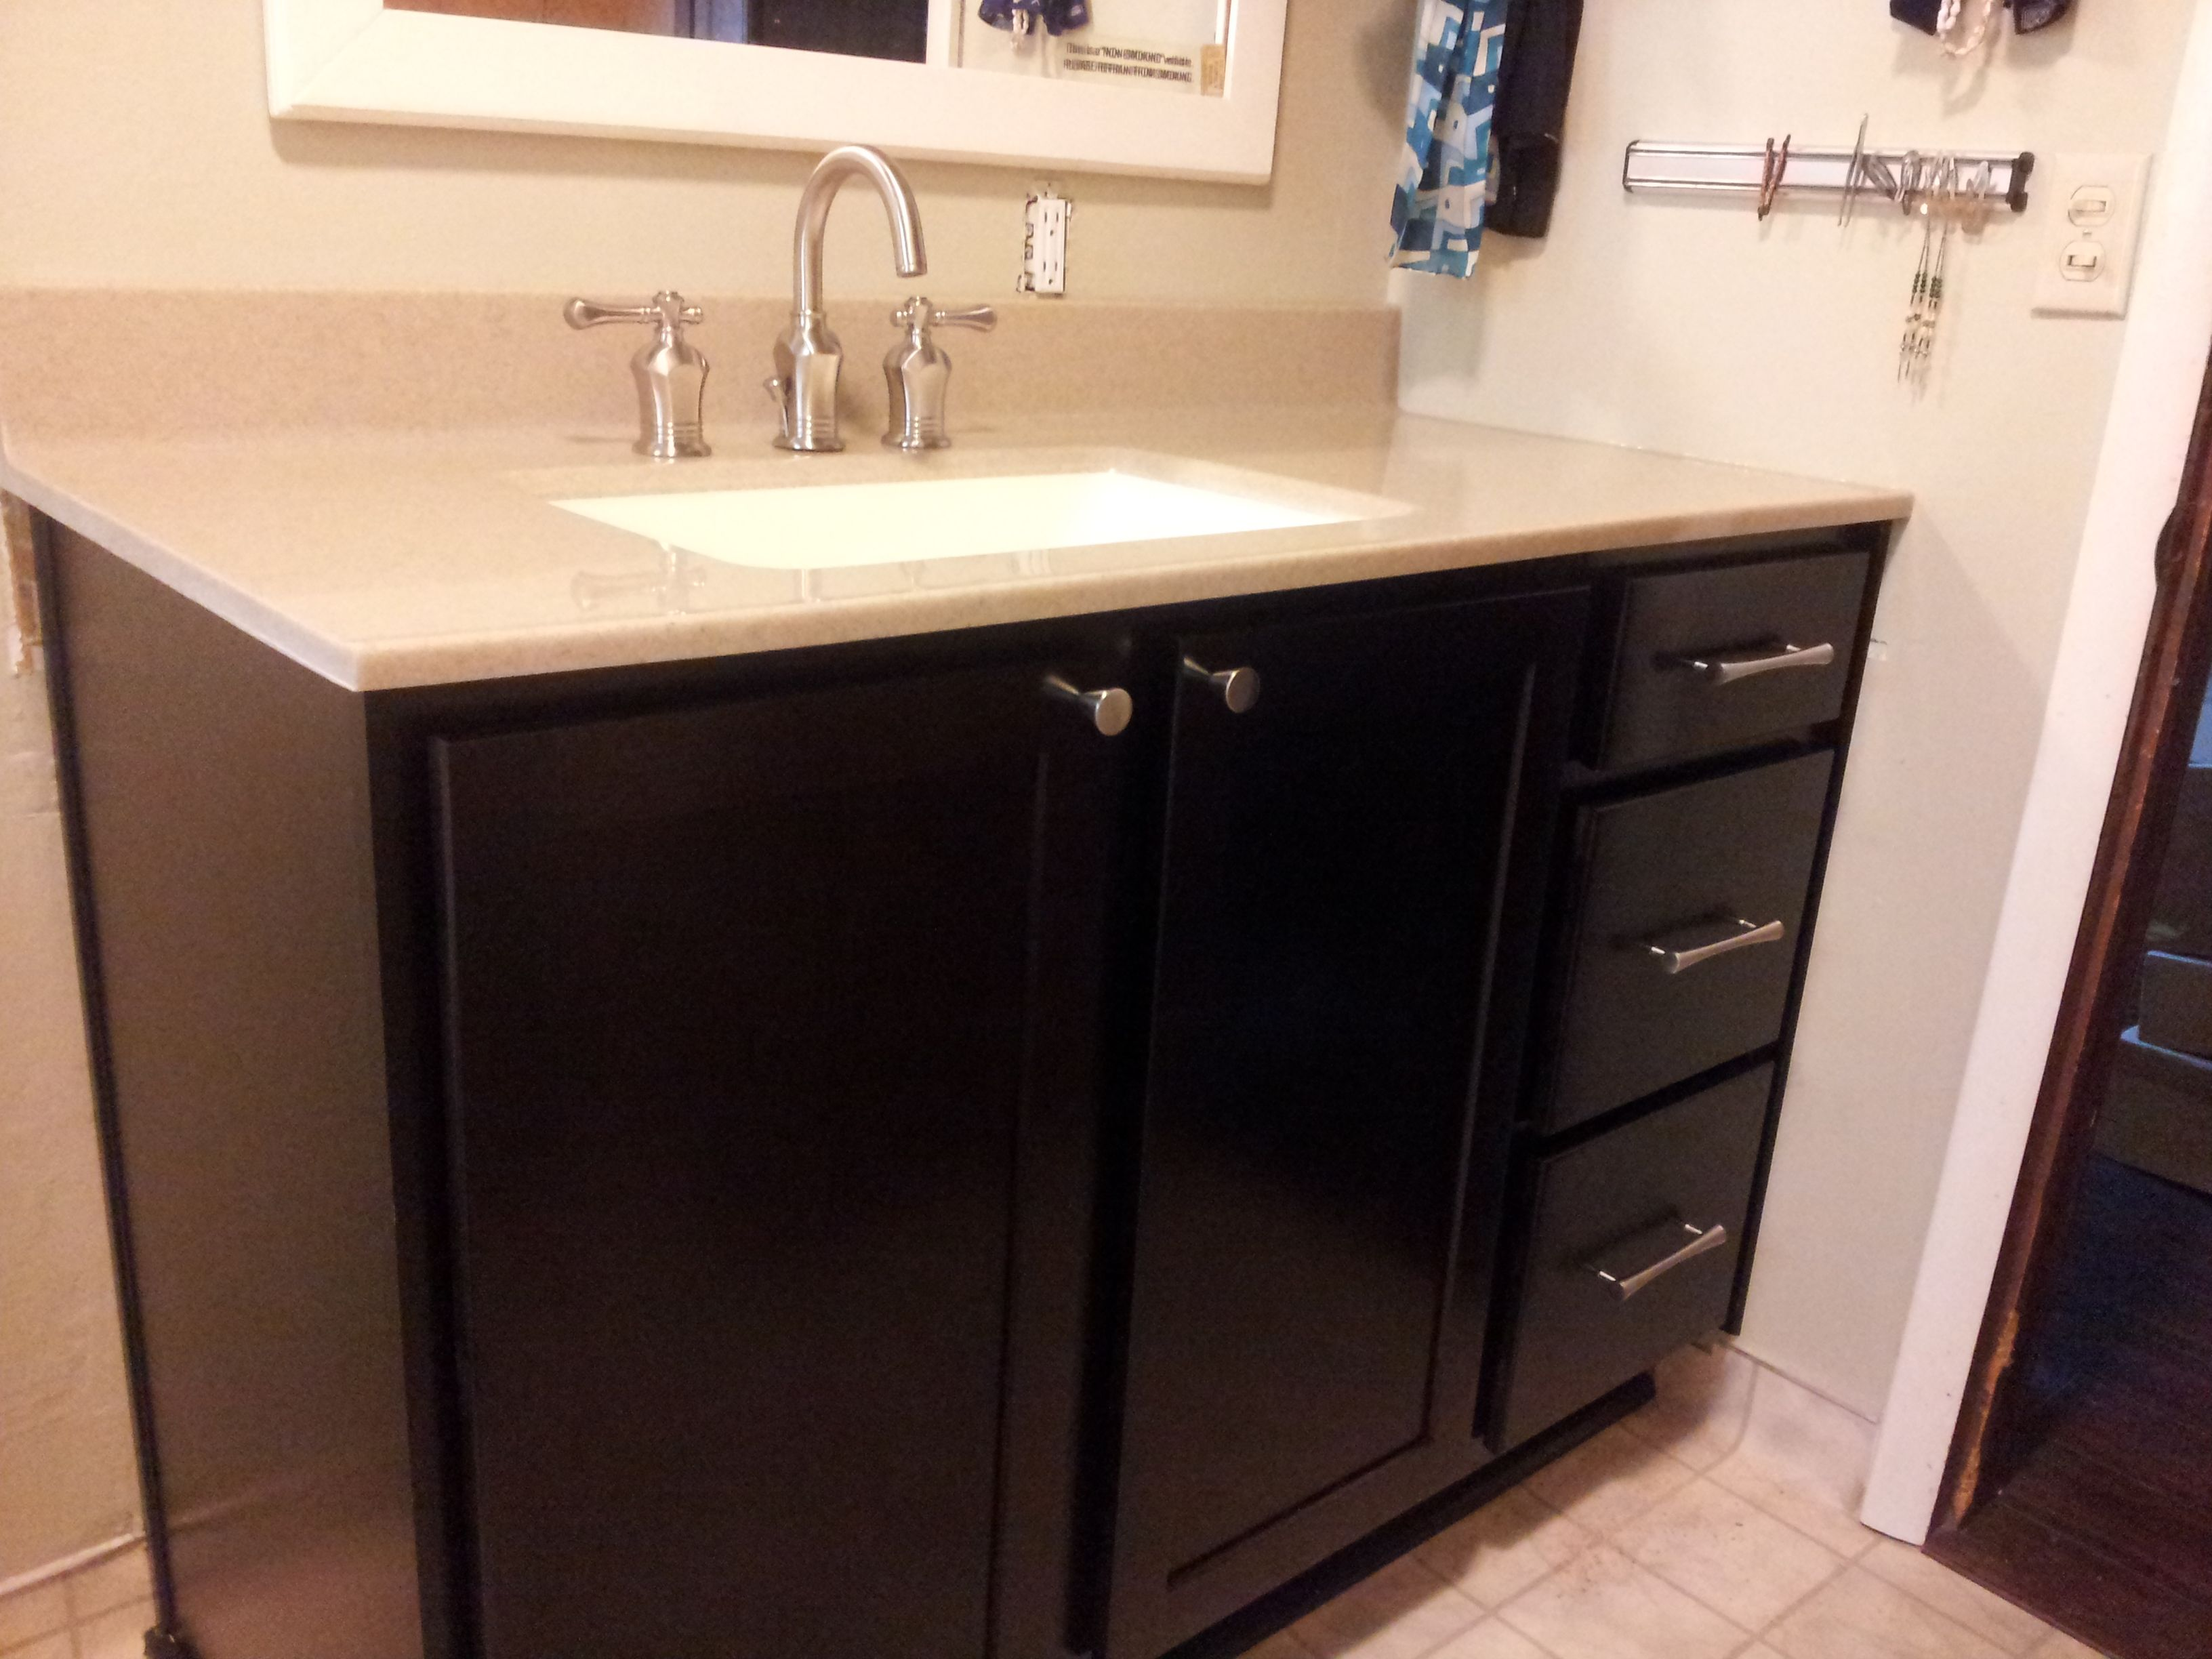 Bathroom Vanity Done With Merillat Basic Cabinets Onyx Collection Top S And Pulls By Hardware Resources Faucet Pegasus